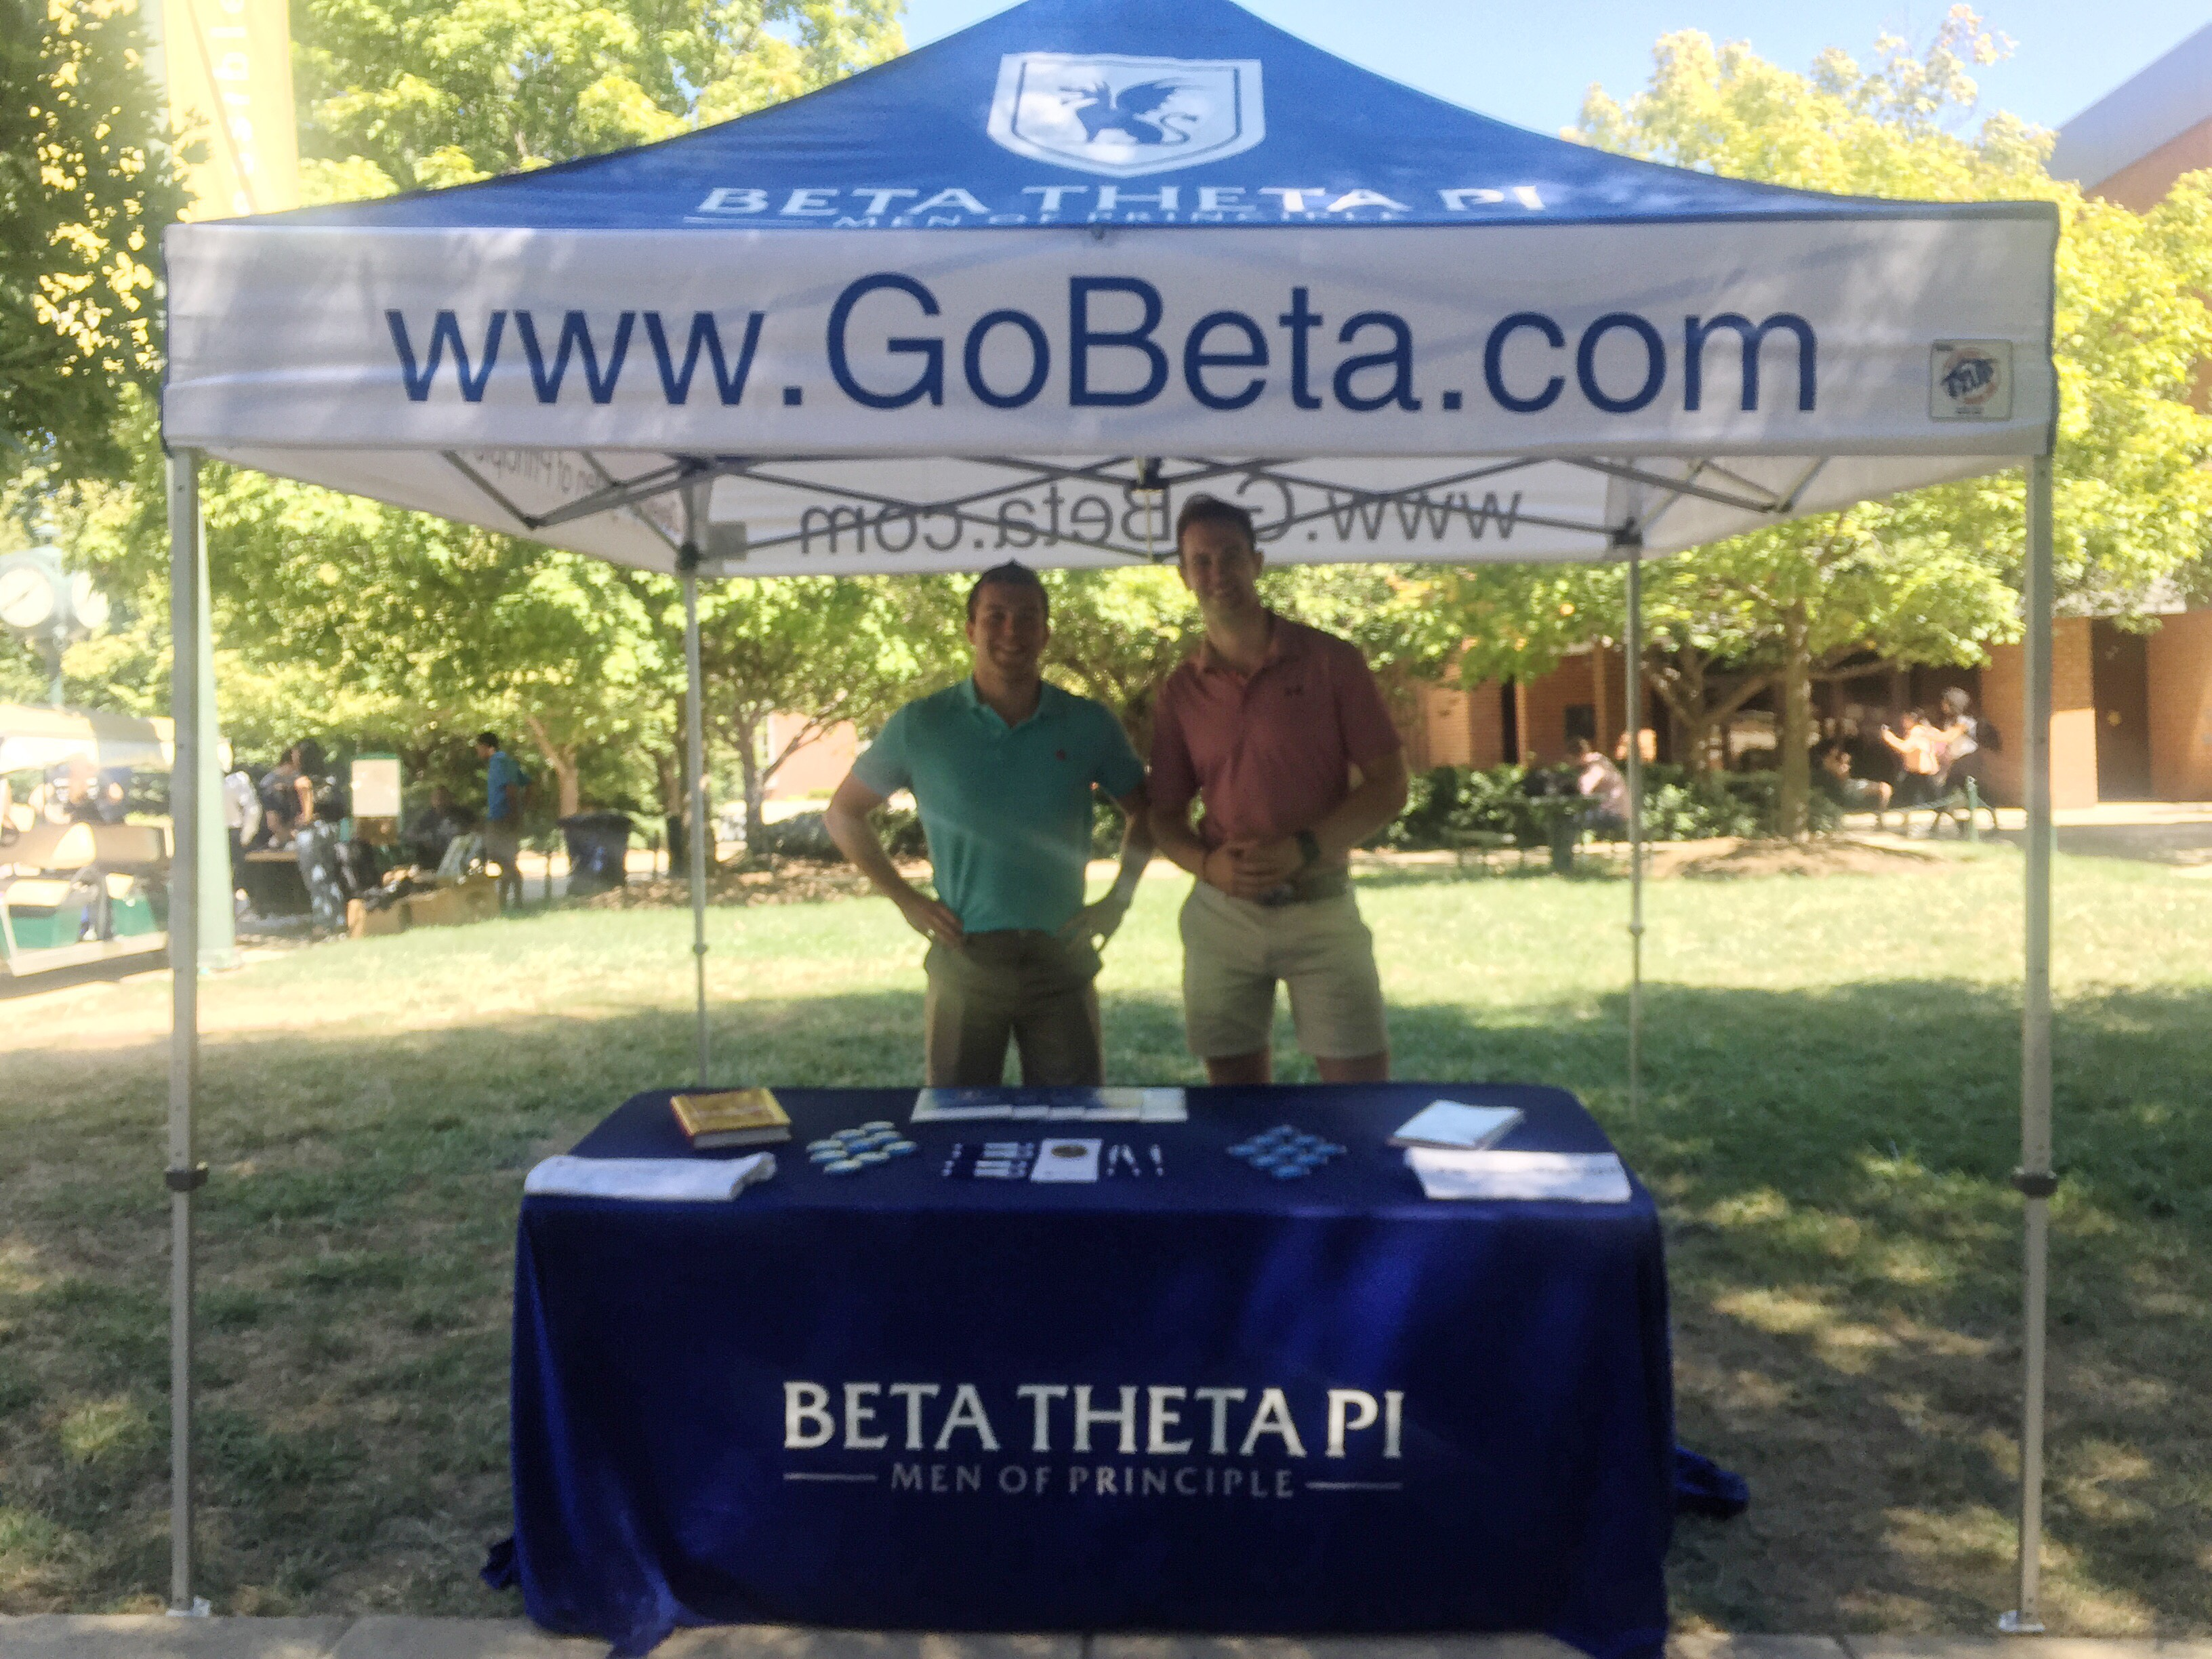 Jordan Lemoine & John Hubbard actively in the JC quad area, recruiting for a newly formed fraternity here at George Mason. Beta Theta Pi has successfully recruited 30 students but looks to expand out to at least a total of 50.